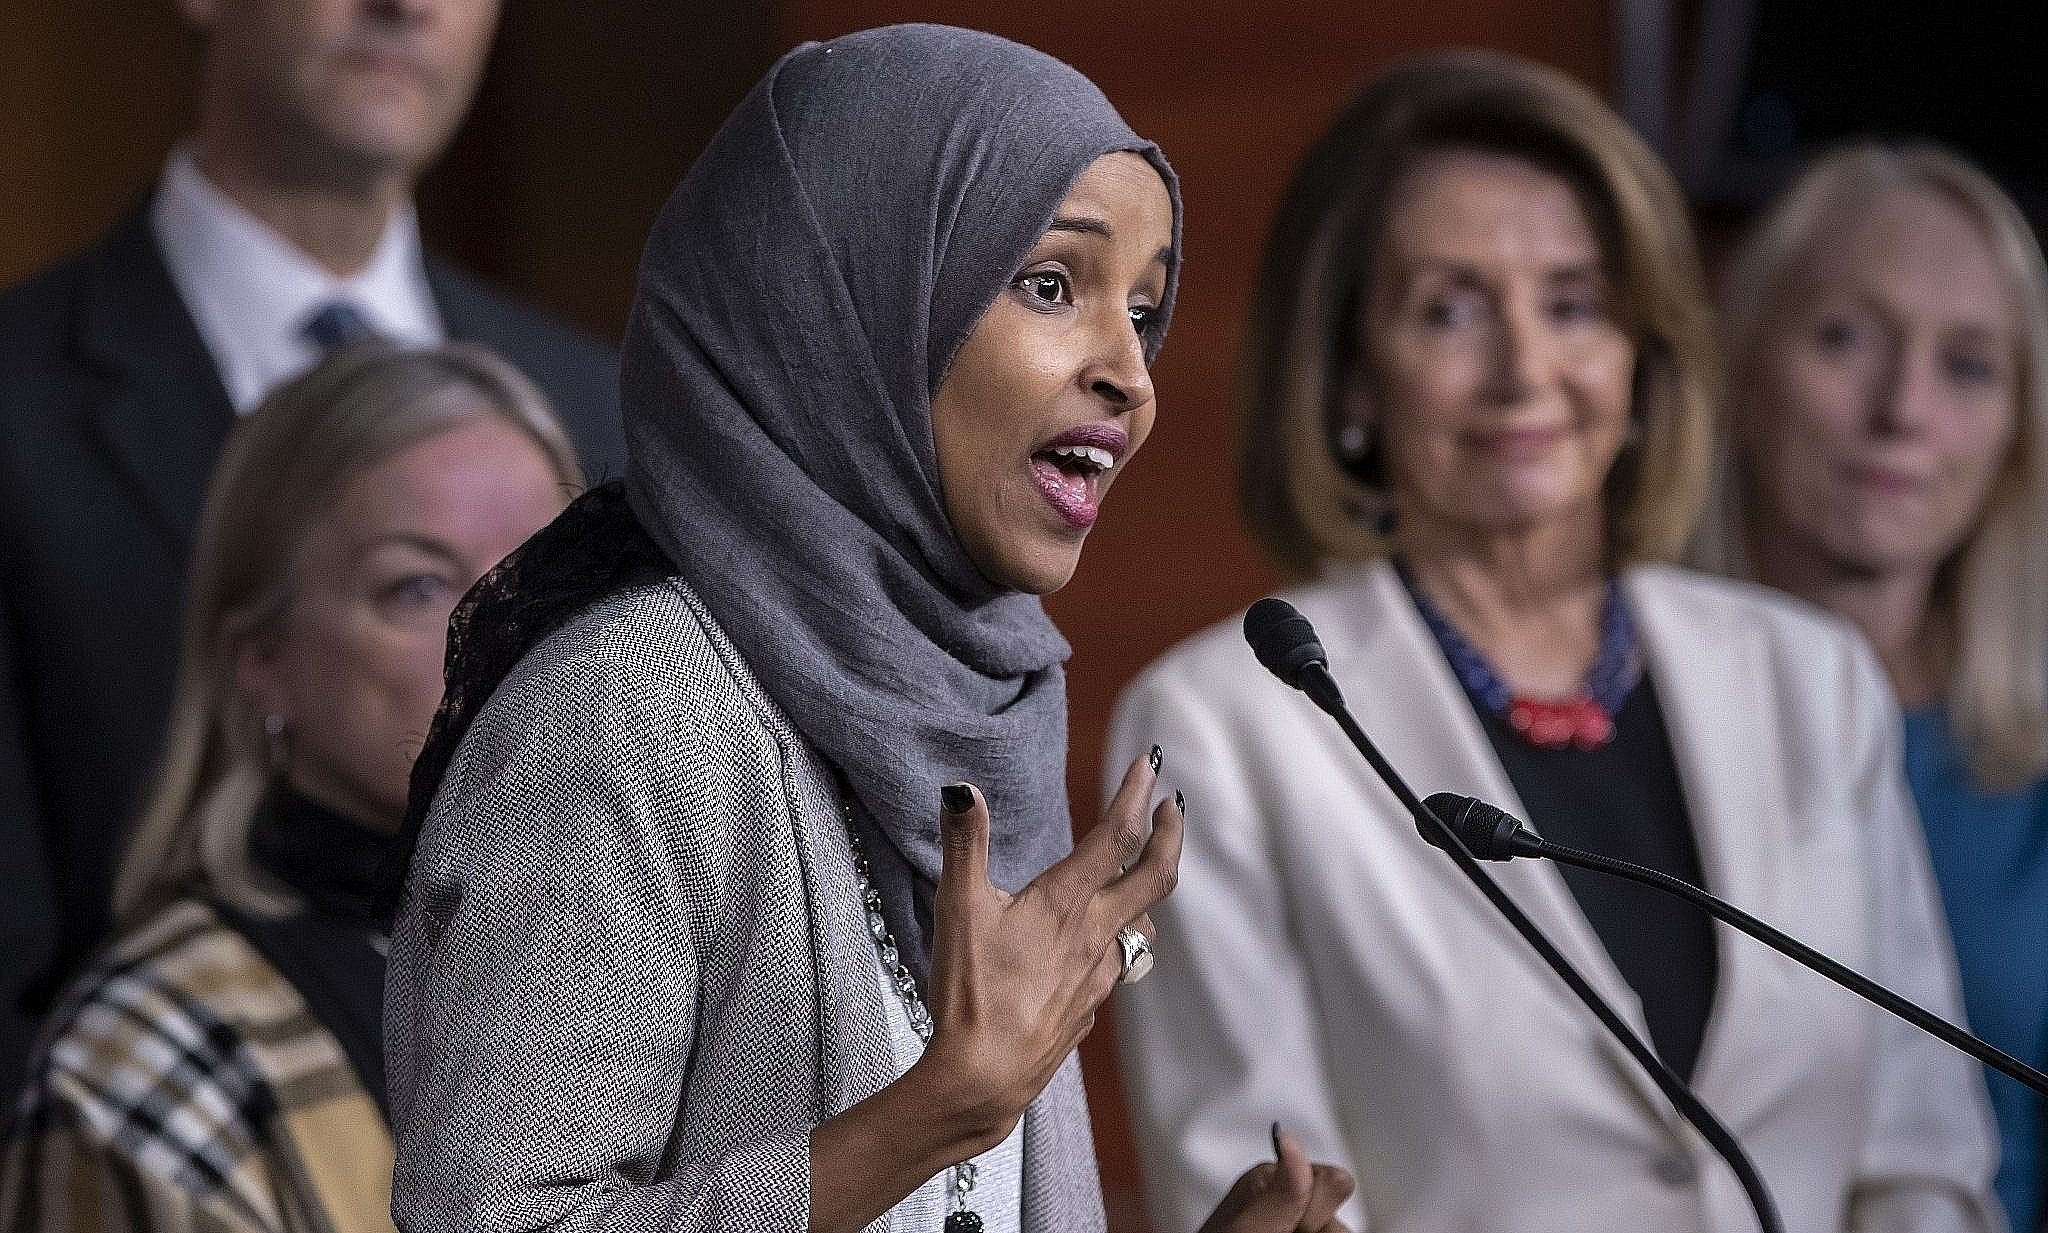 democrats admonish lawmaker omar as outcry over aipac